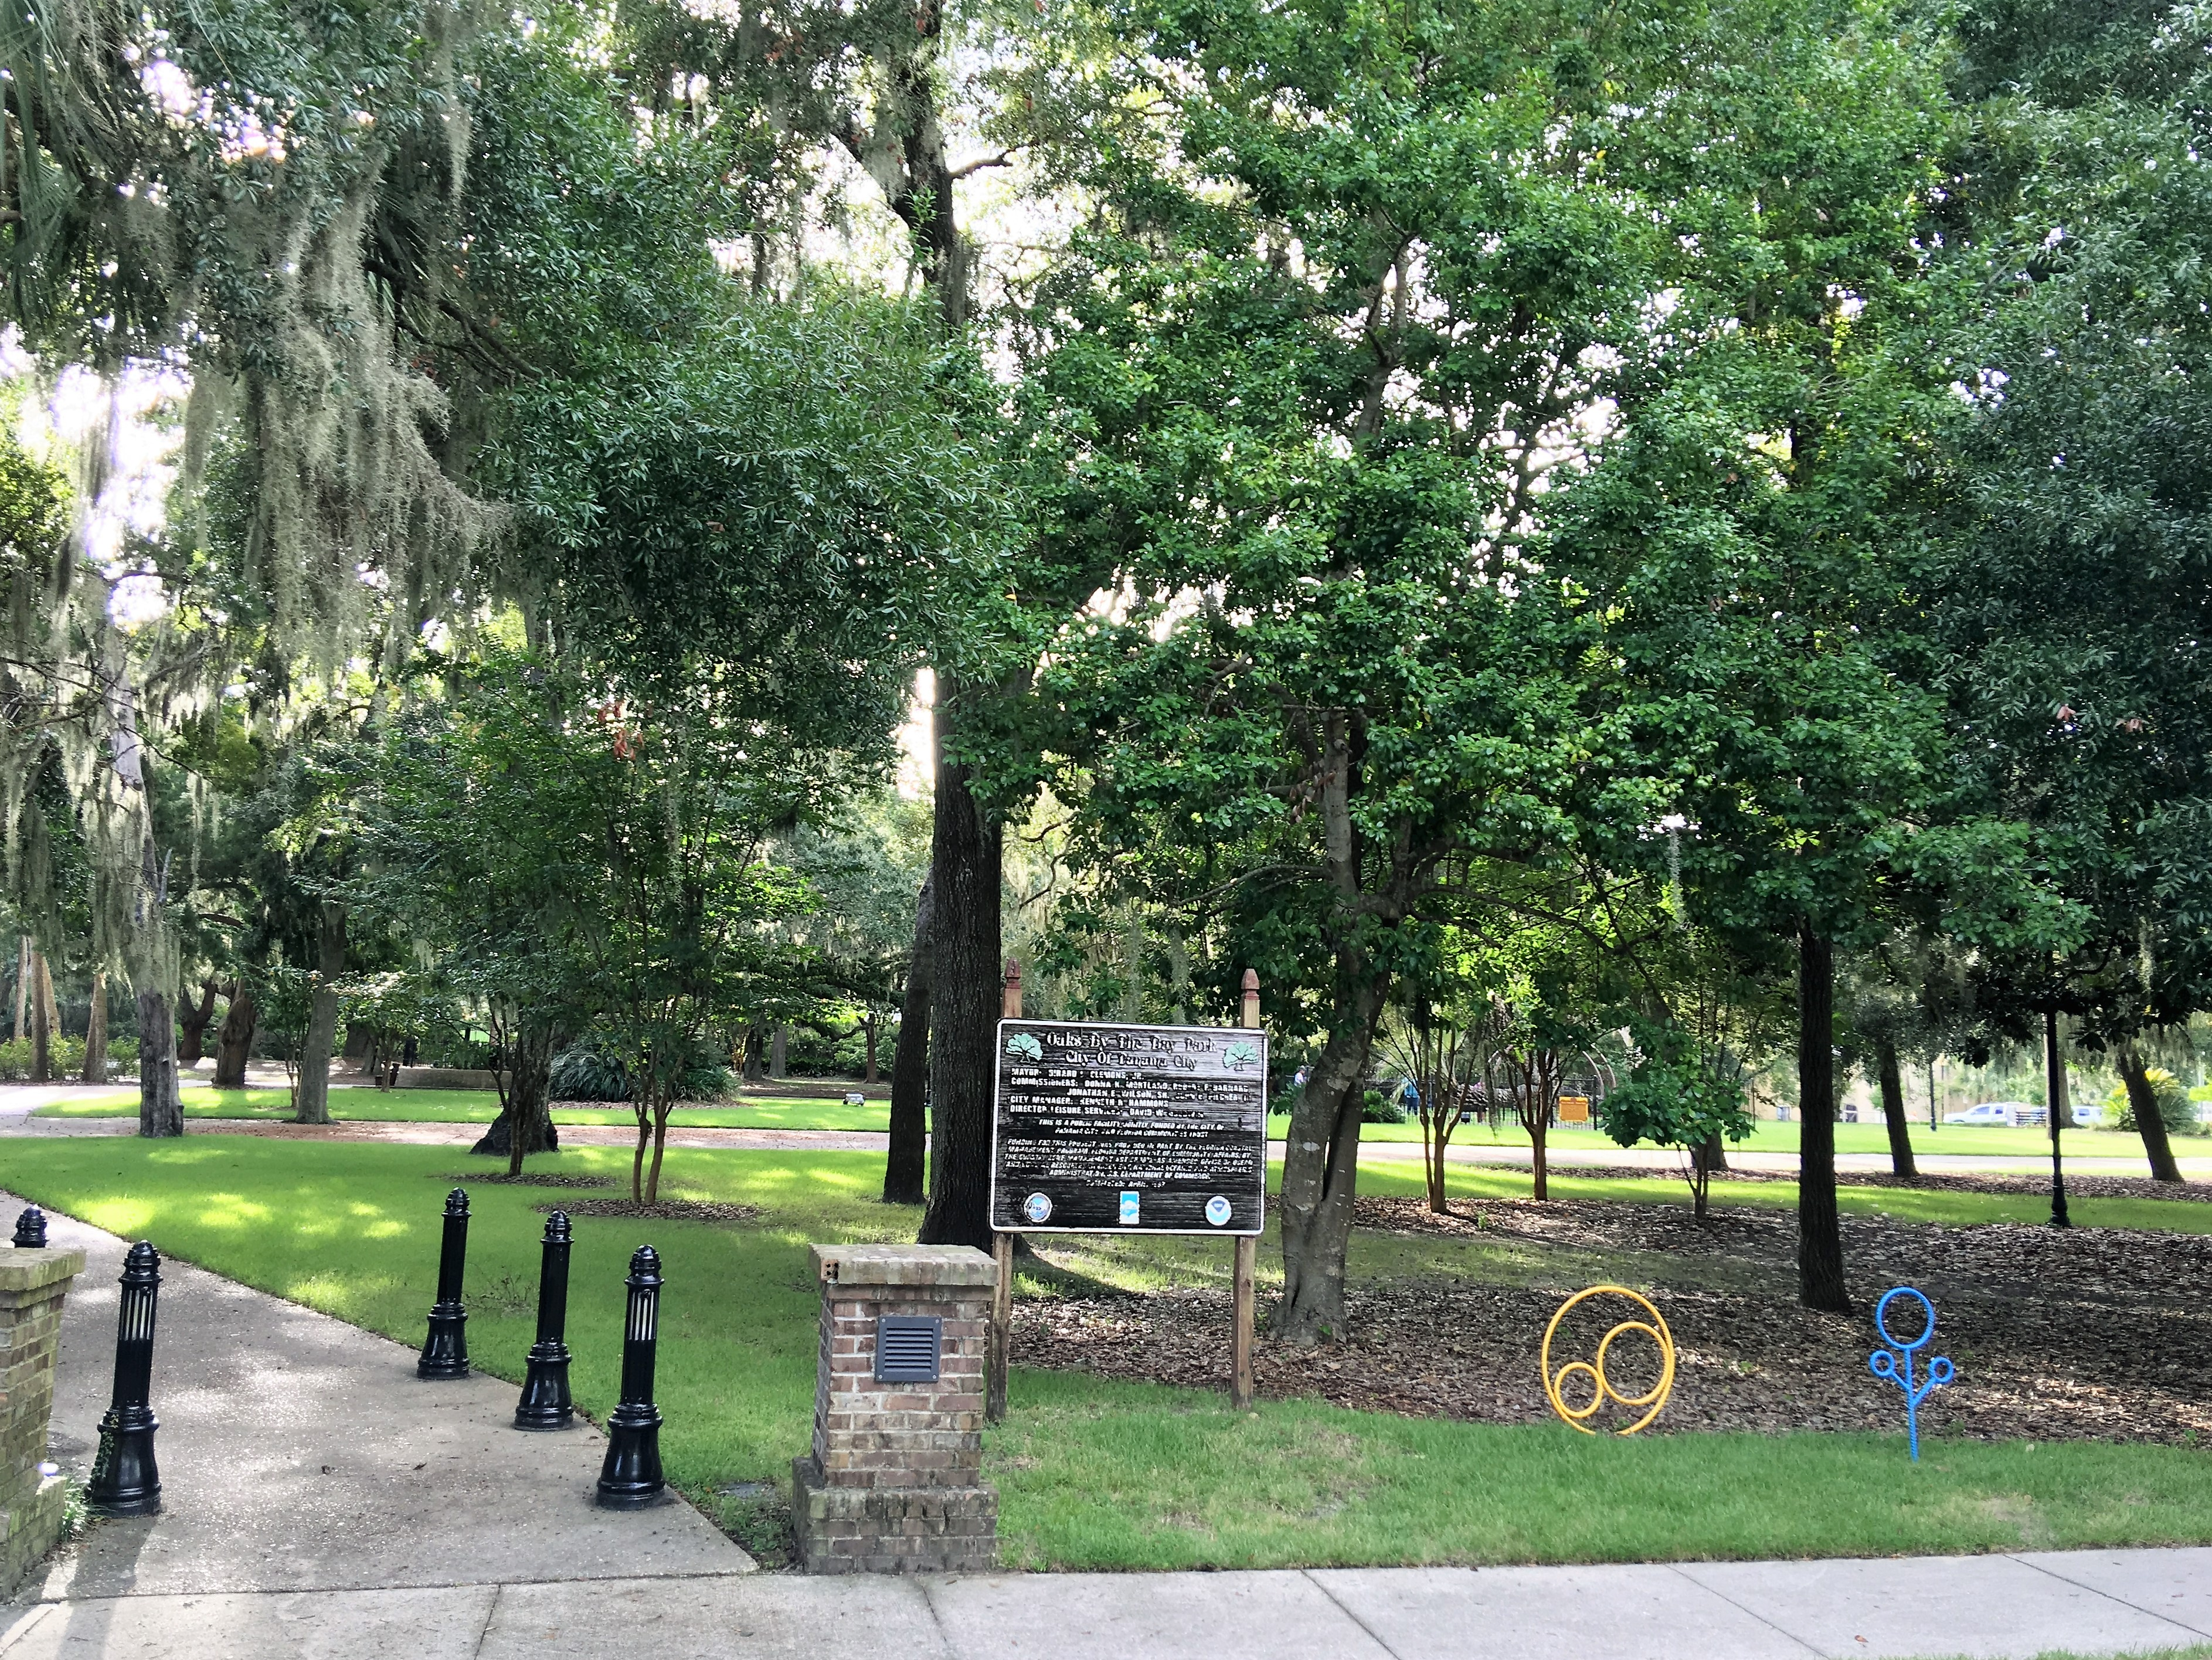 St Andrews Downtown park